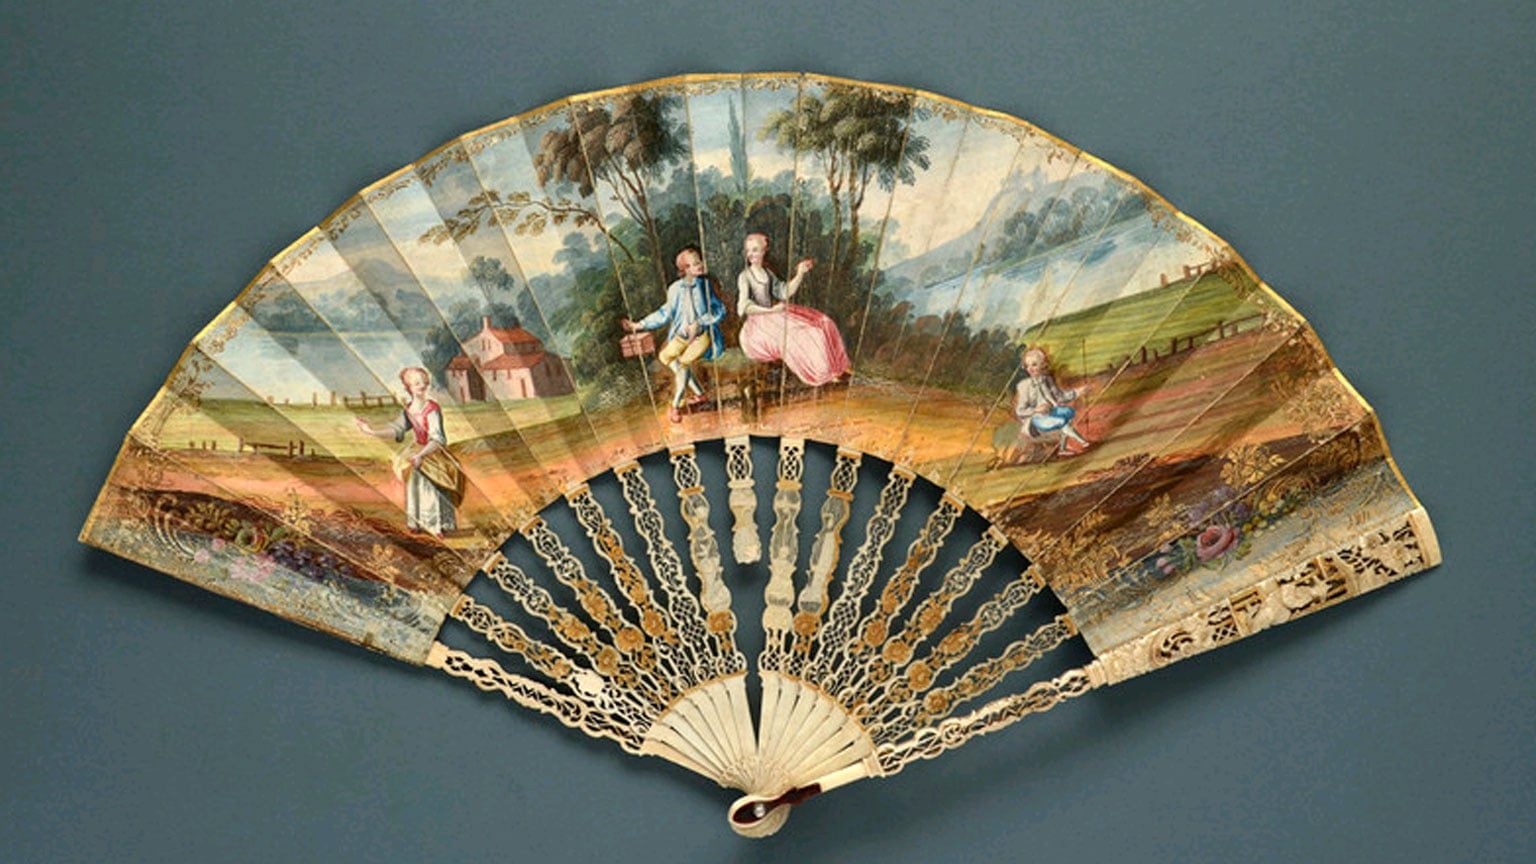 3. Fan Museum, London. Free entry with National Art Pass - Folding fan painted with a fete champetre, 18th century, Fan Museum